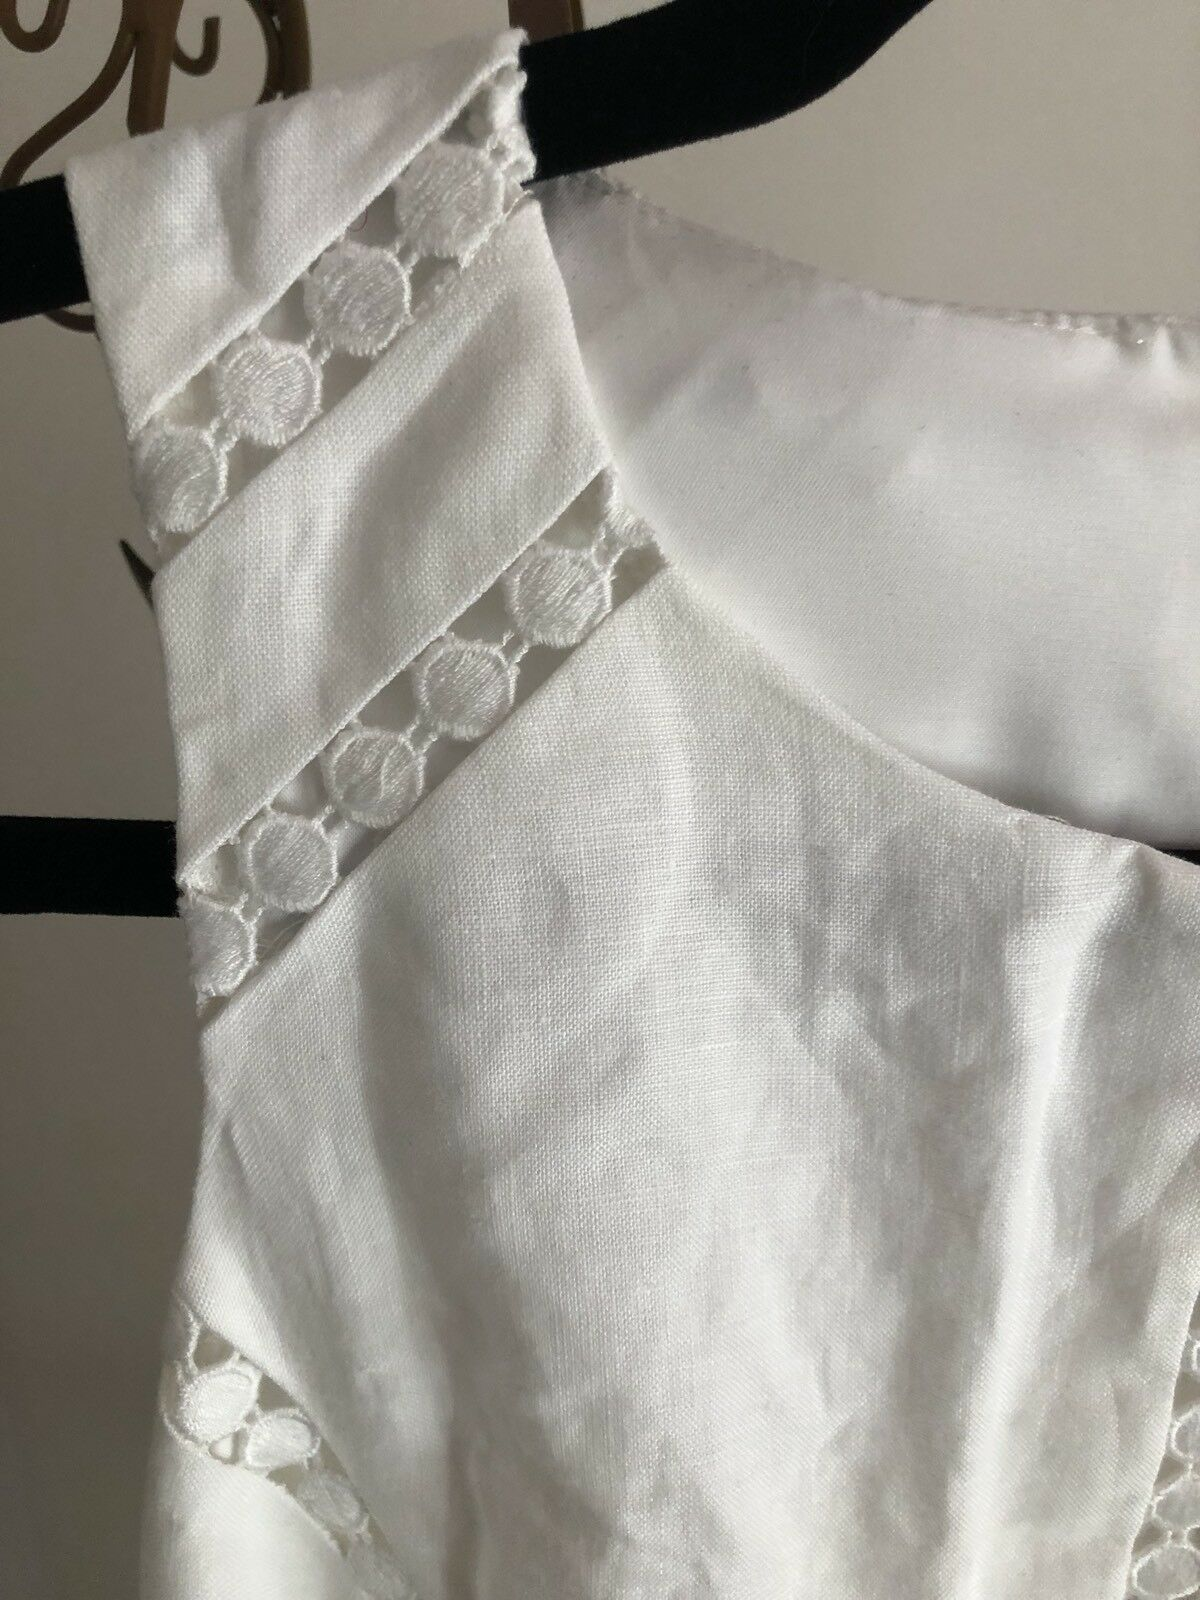 NWT Ann Taylor Taylor Taylor Dress in White Sundress Lace Details Women's Size 2 96c35f